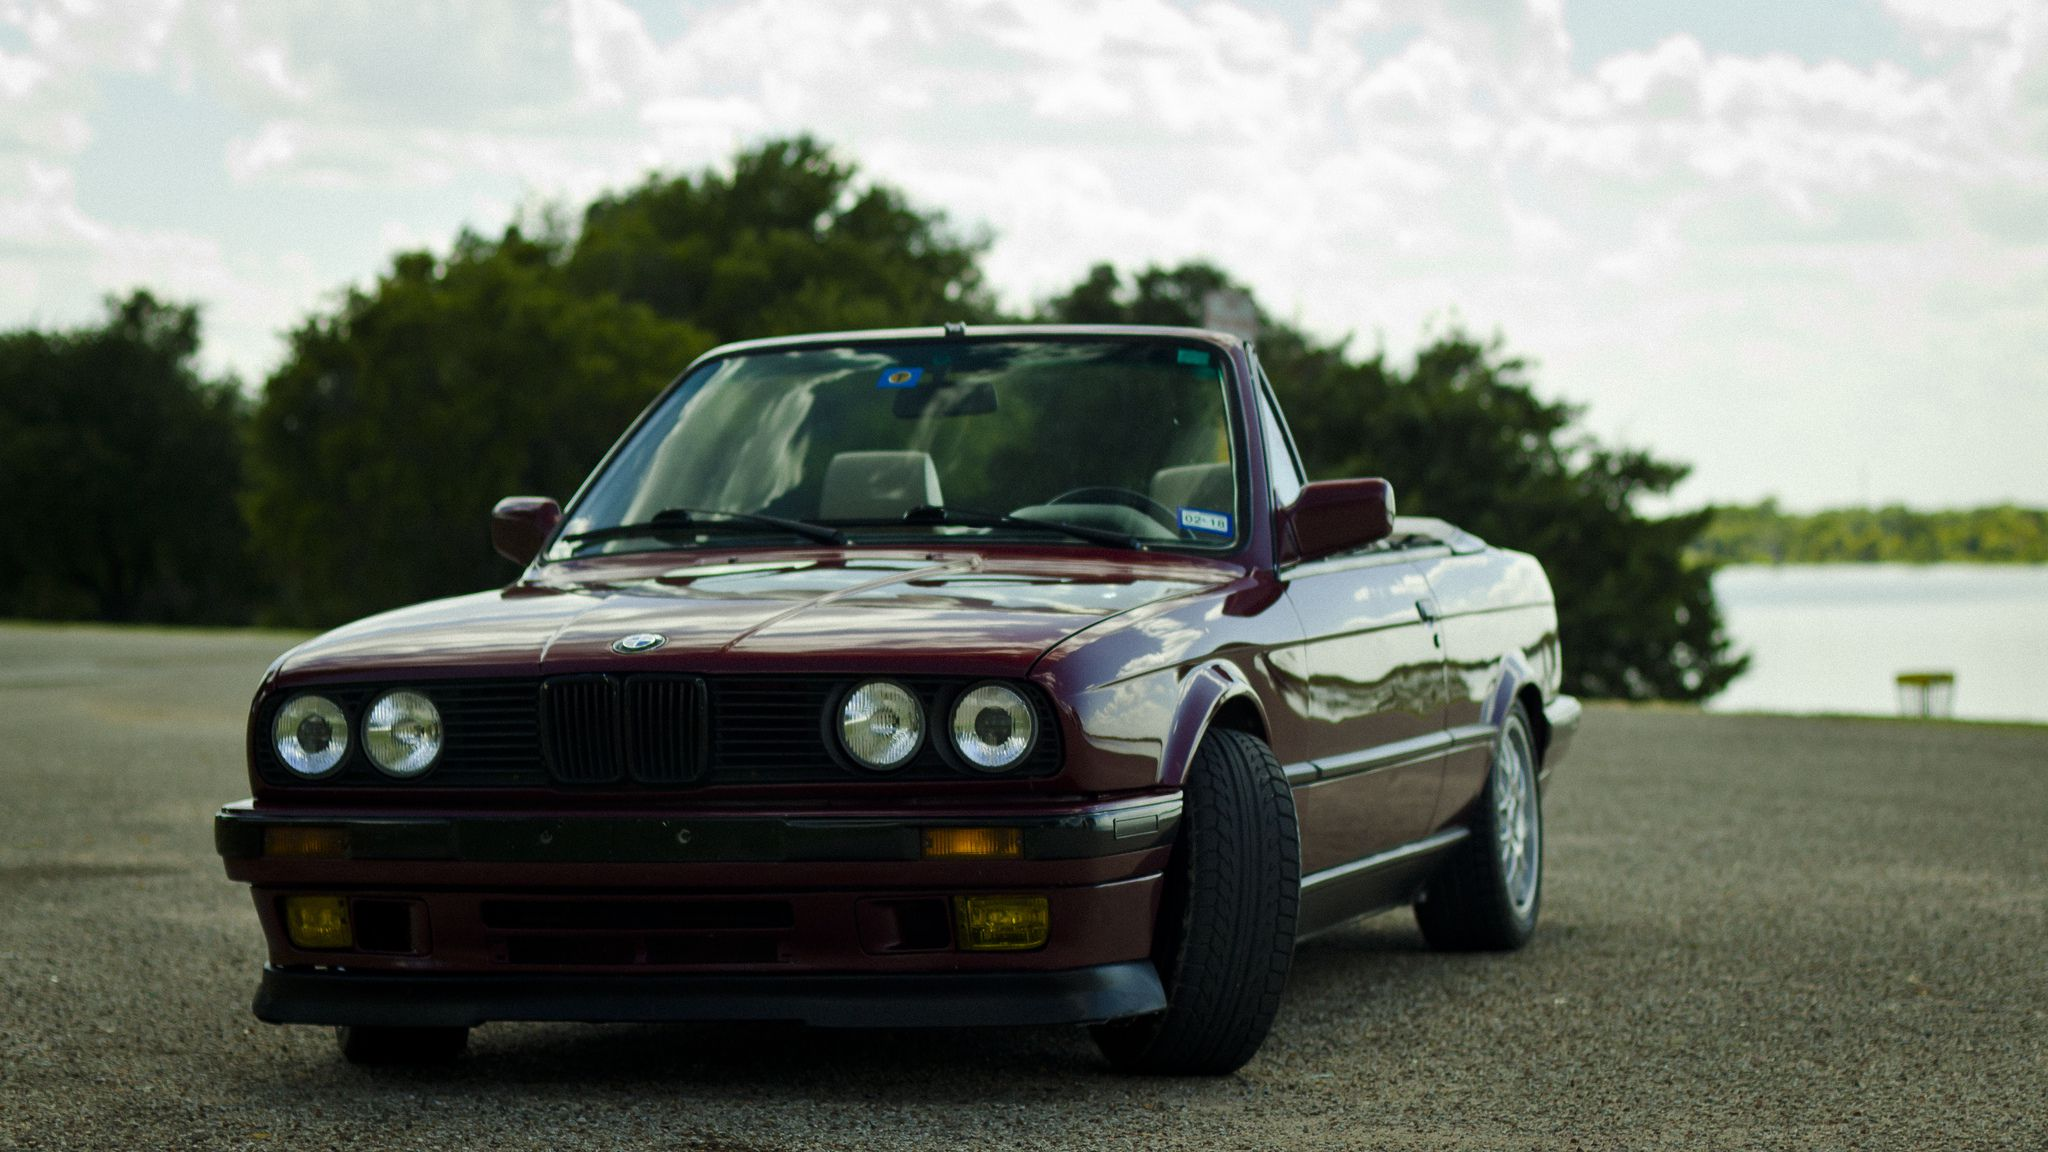 Bmw E30 Front View Hd Image 2